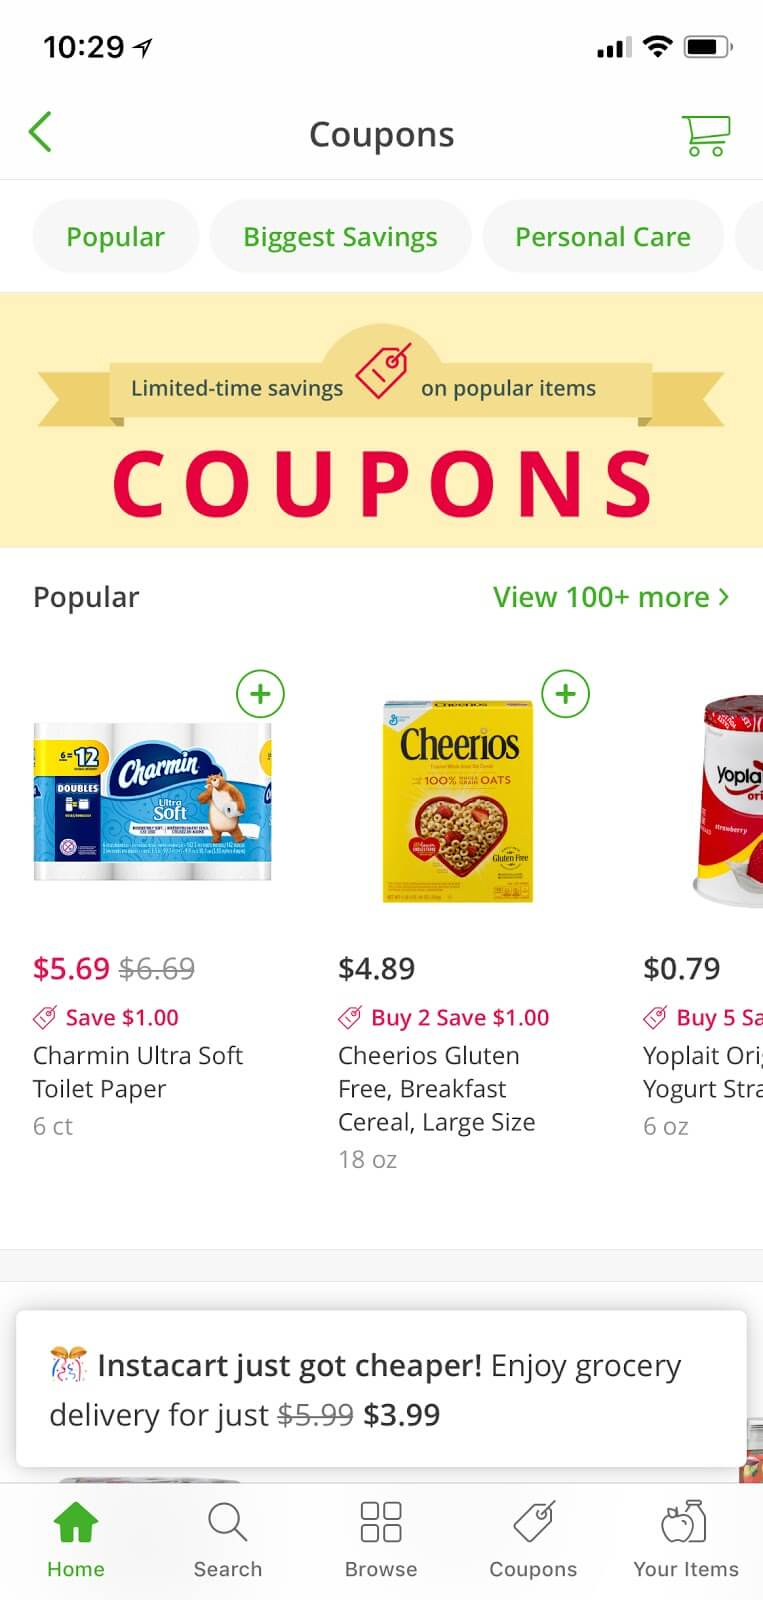 Try Out Grocery Home Delivery With an Instacart Promo Code